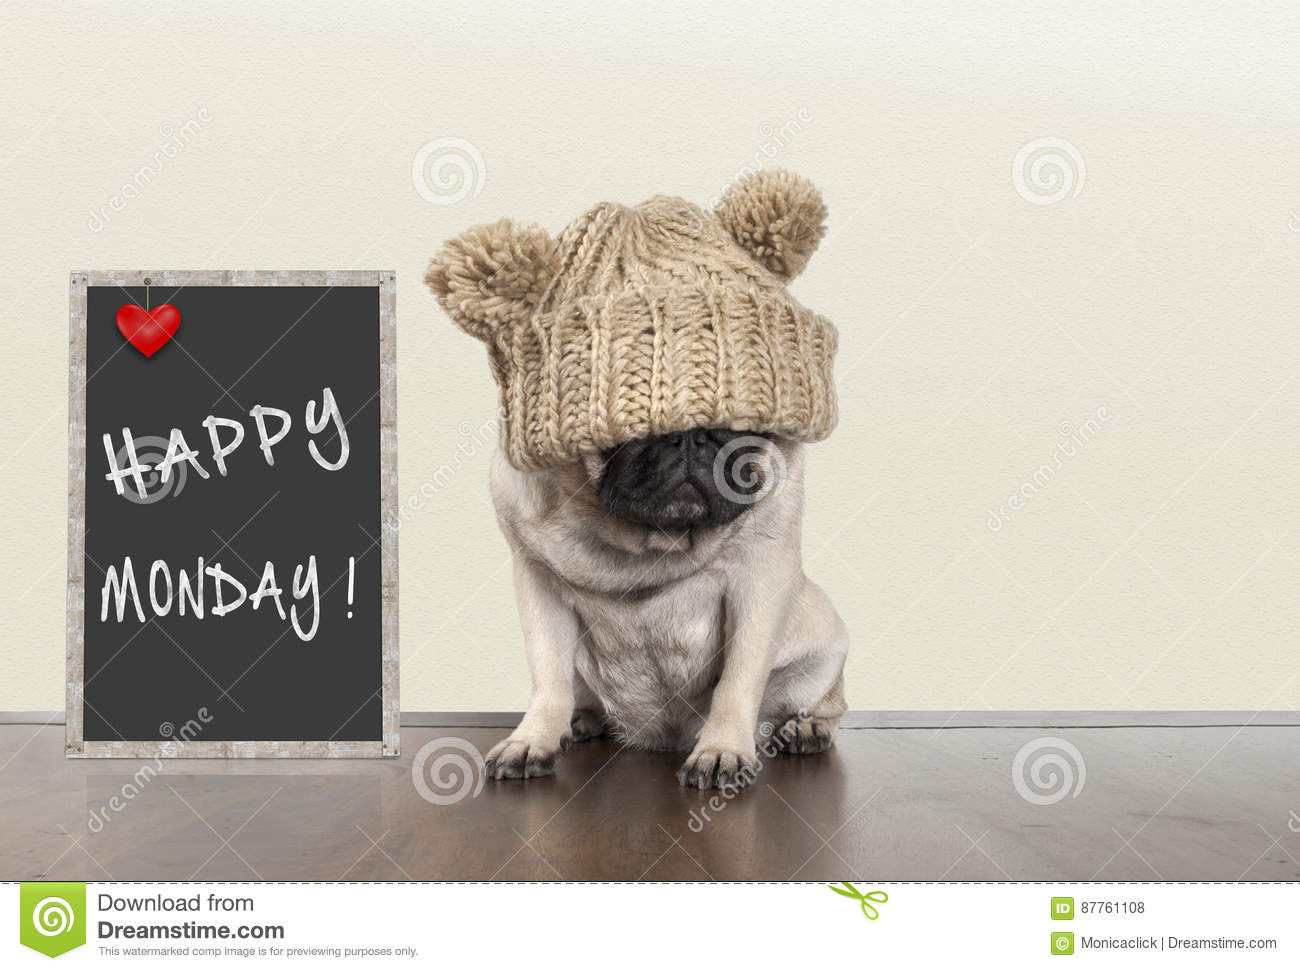 Cute pug puppy dog with bad monday morning mood, sitting next to blackboard sign with text happy monday, copy space